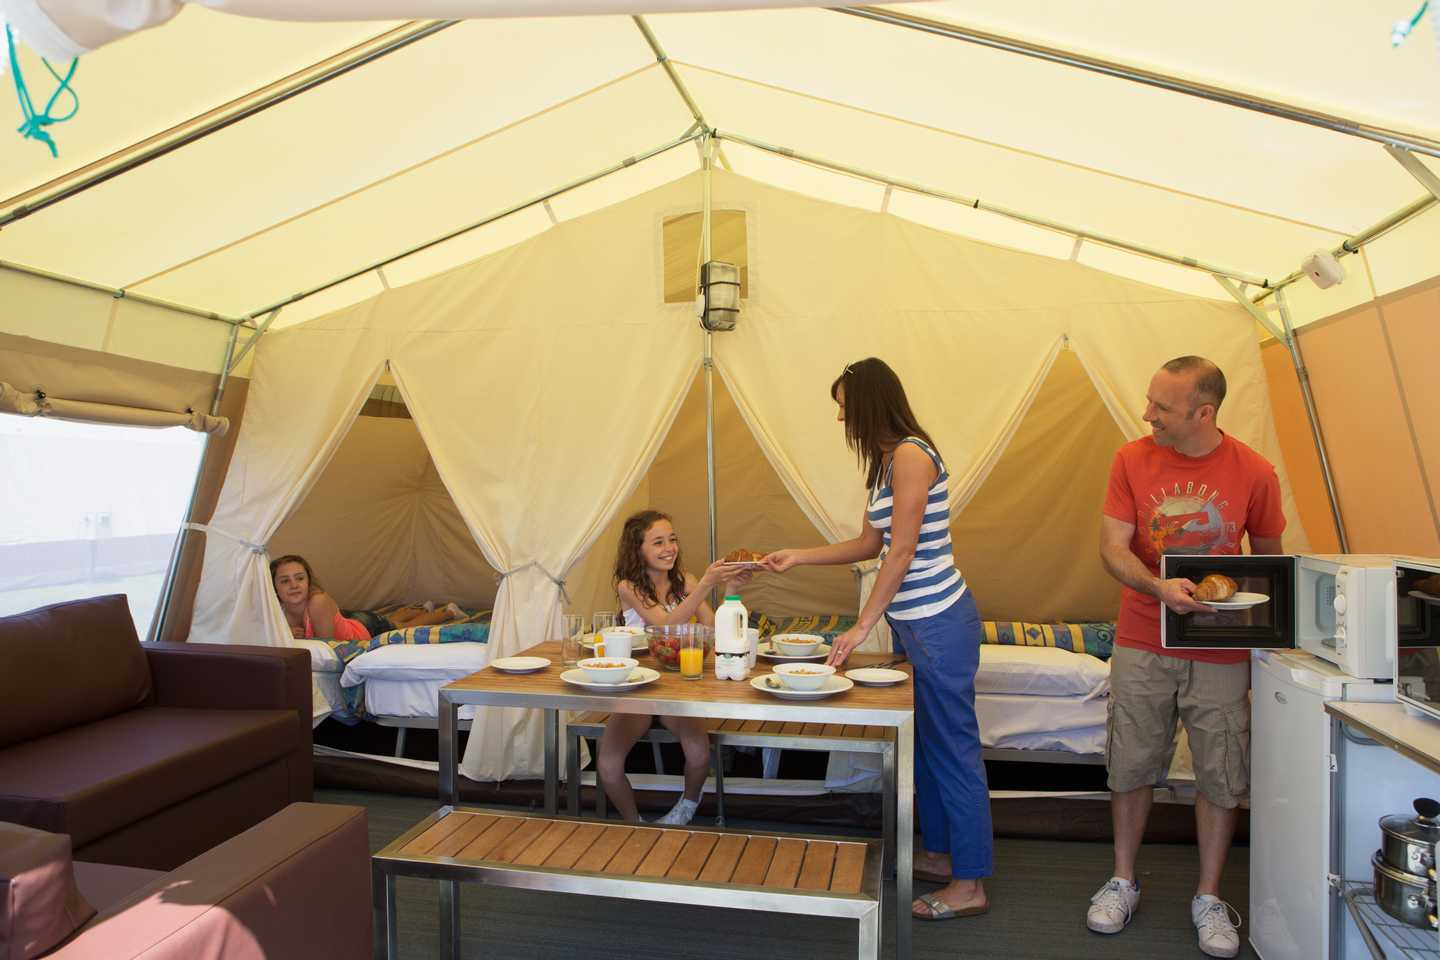 A family having breakfast in a Supertent